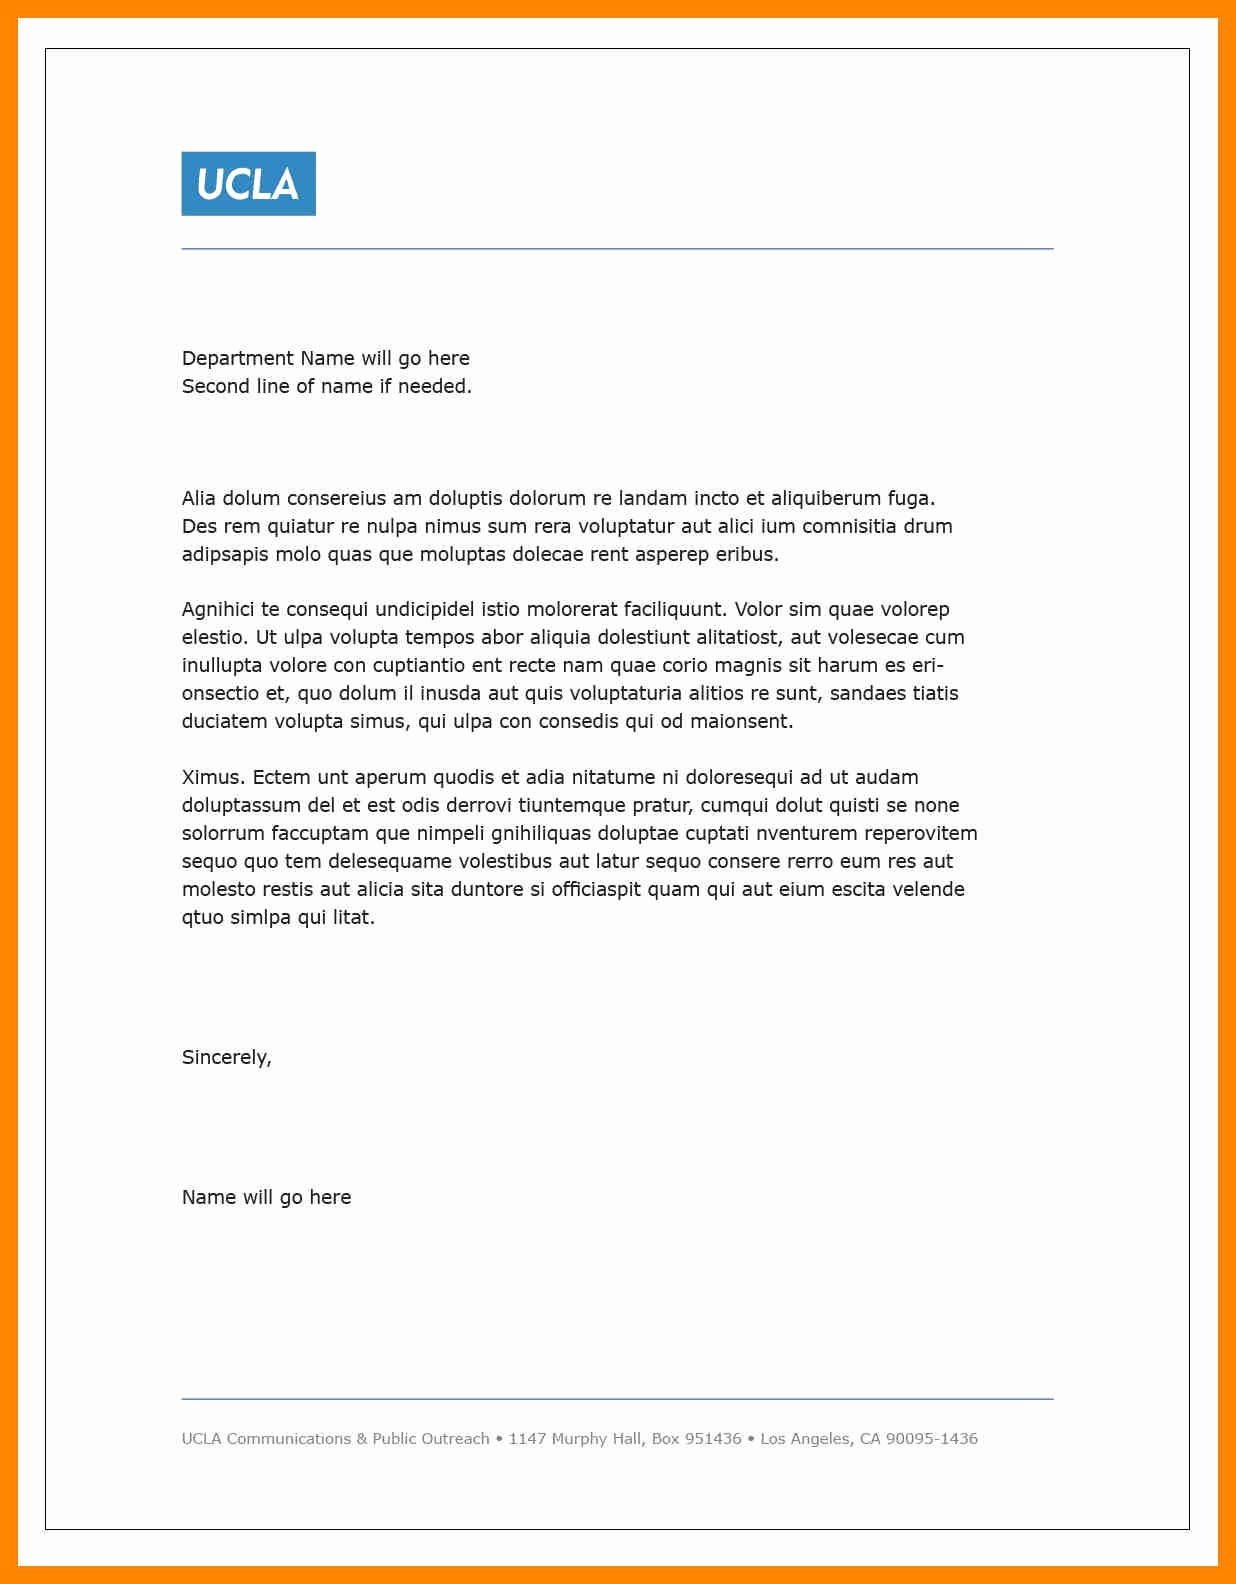 Application Letter Template Word - Awesome Free Cover Letter Template Word